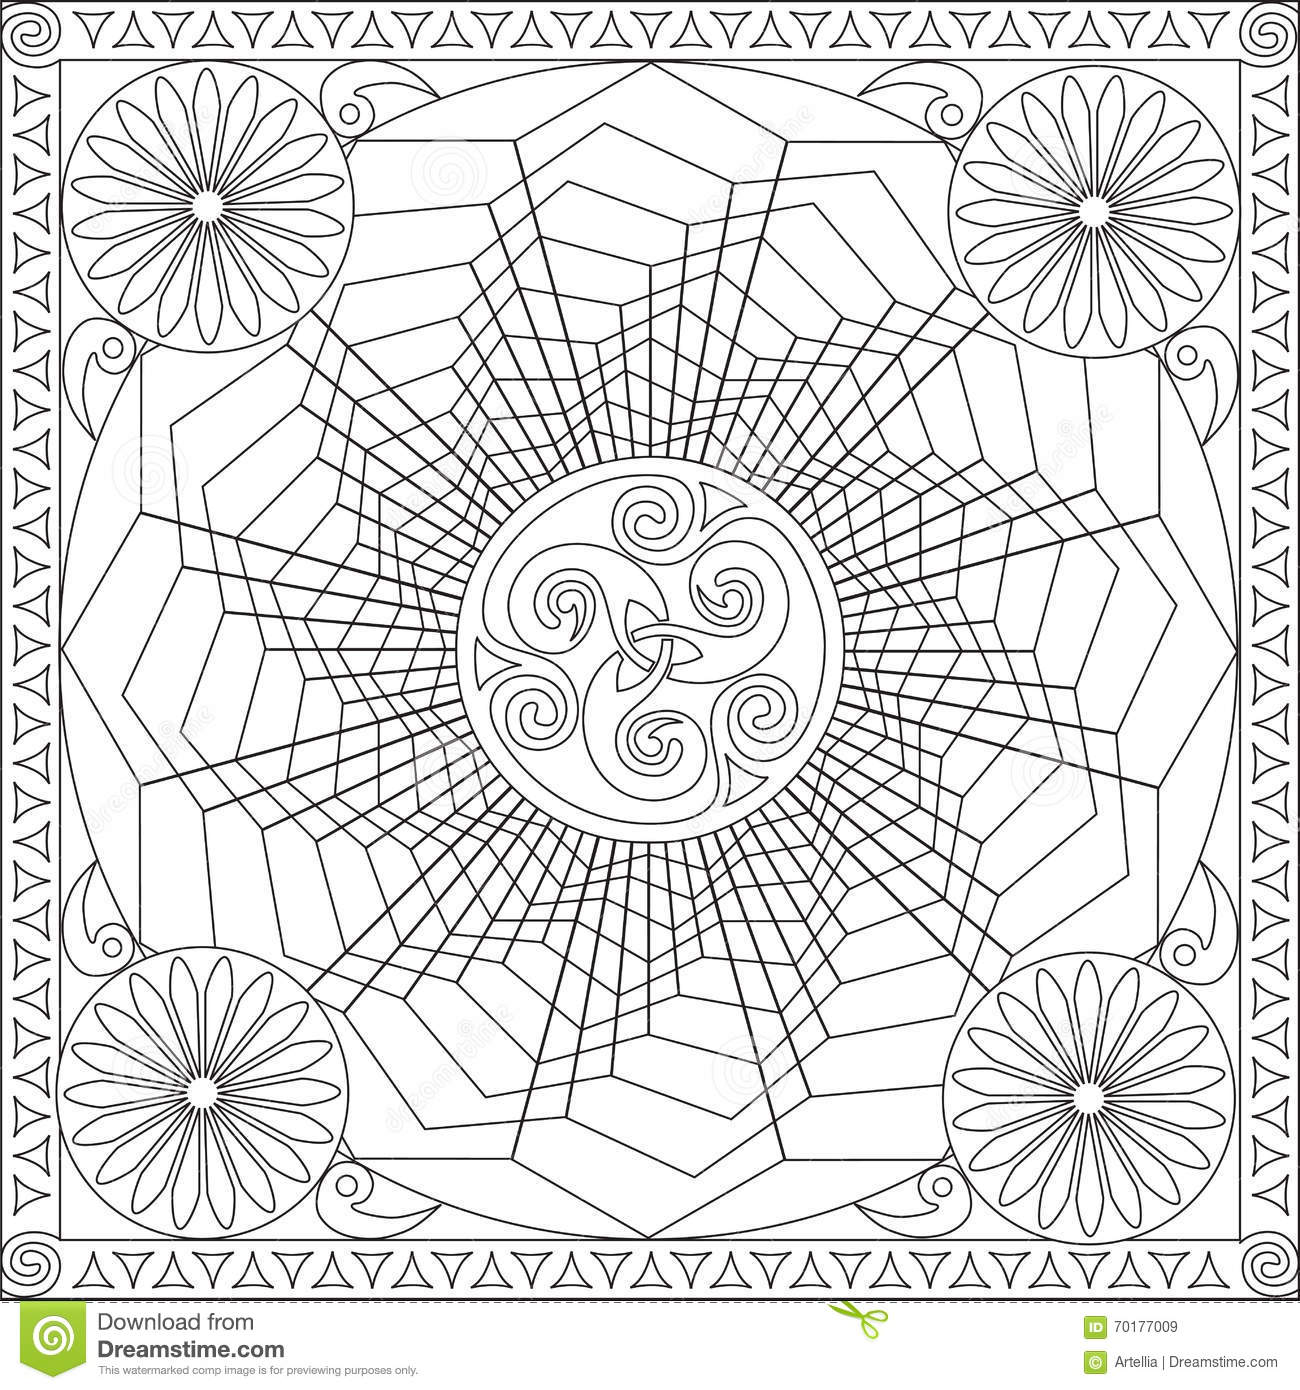 Coloring Page Book for Adults Square Format Geometric Flower Mandala ...